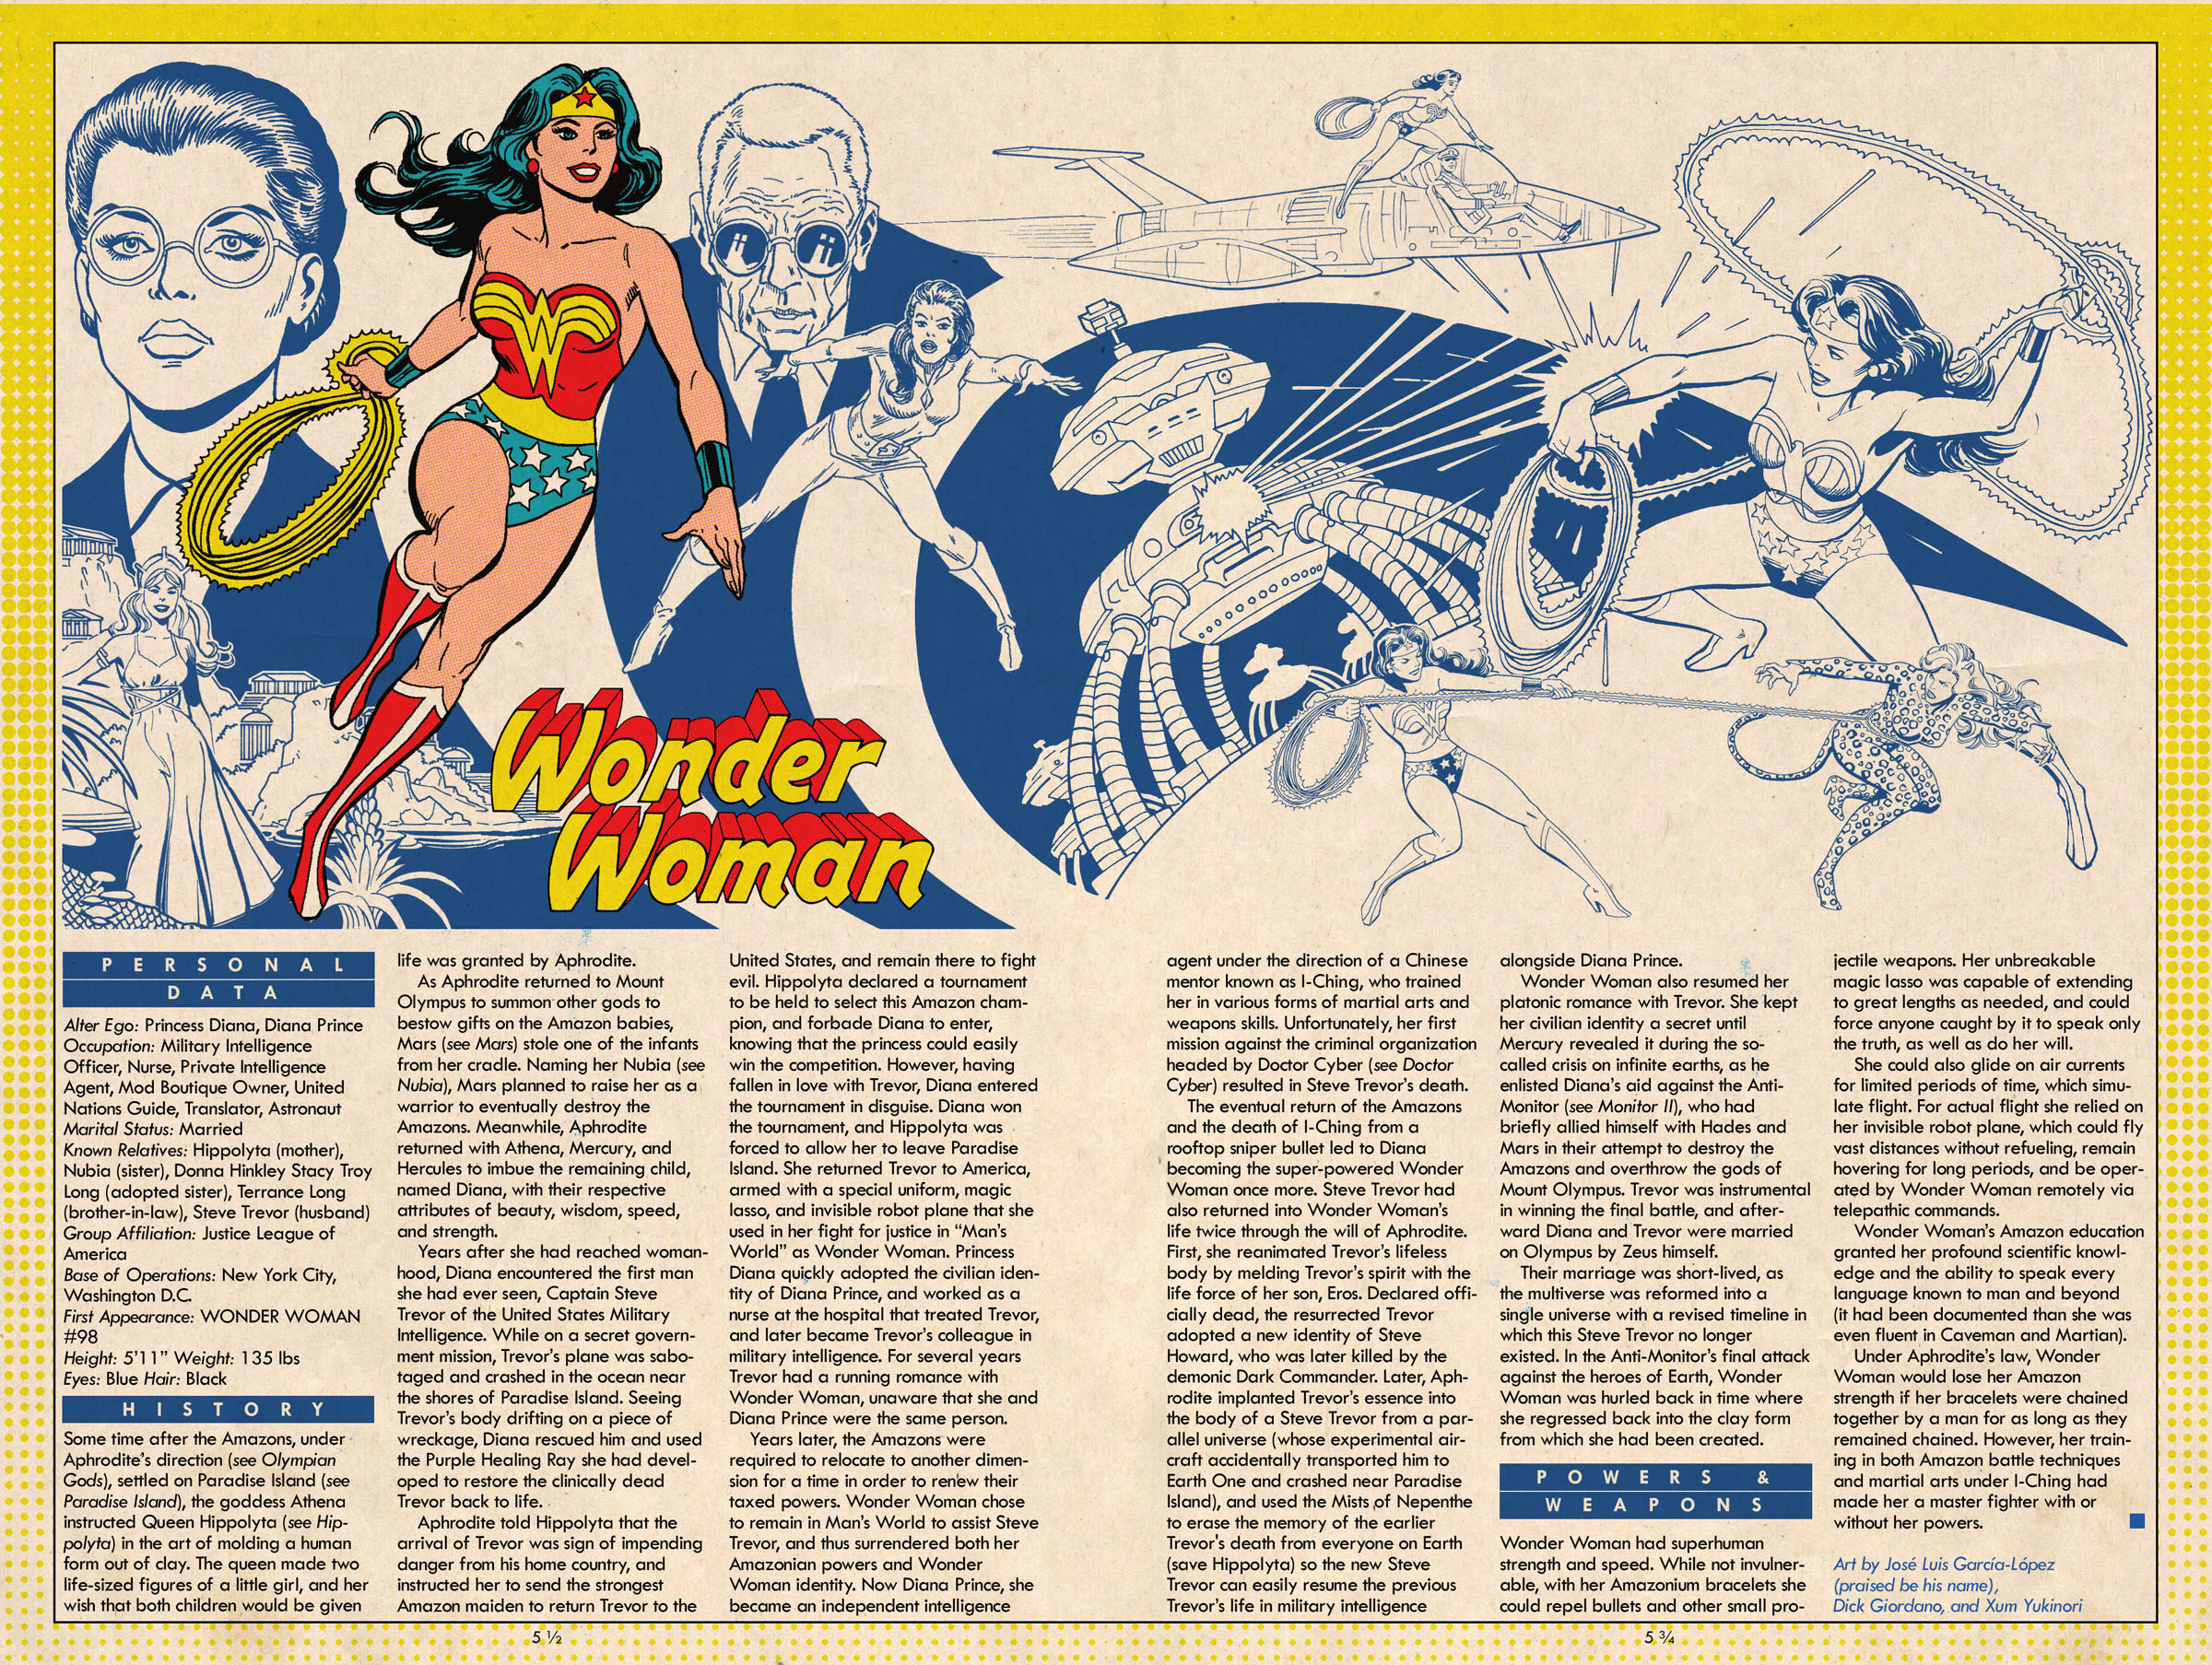 Wonder Woman by Jose Luis-Garcia Lopez (Praise Be His Name), Dick Giordano and Xum Yukinori - Xum Yukinori's Addendum to the Definitive Directory of the DC Universe!